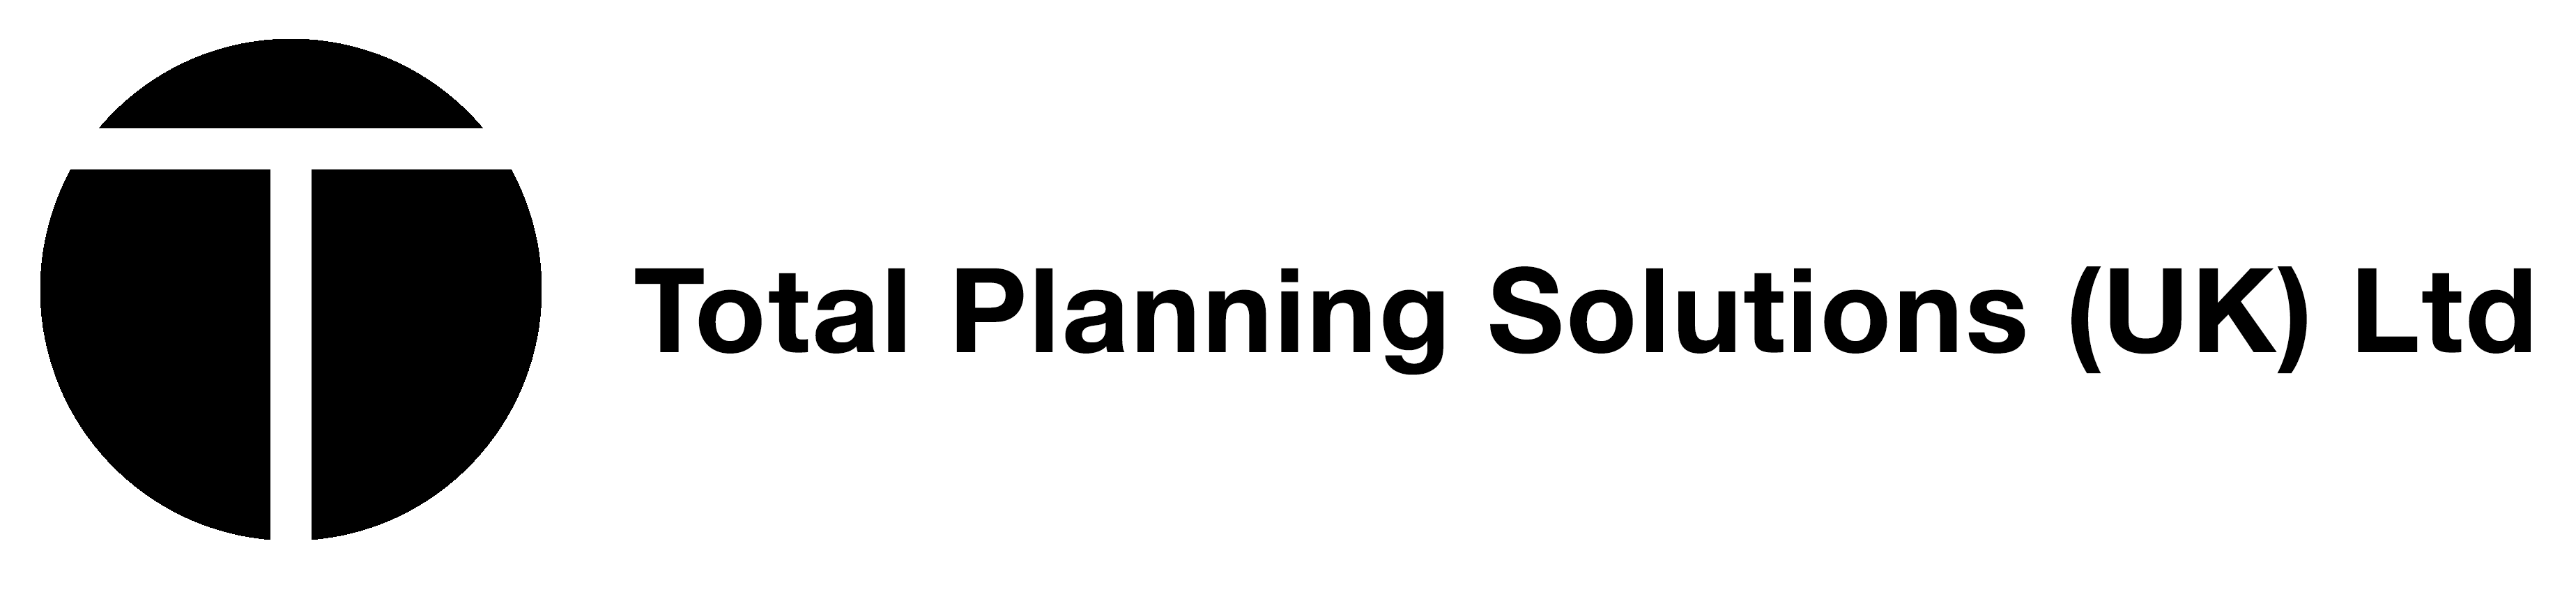 Total Planning Solutions